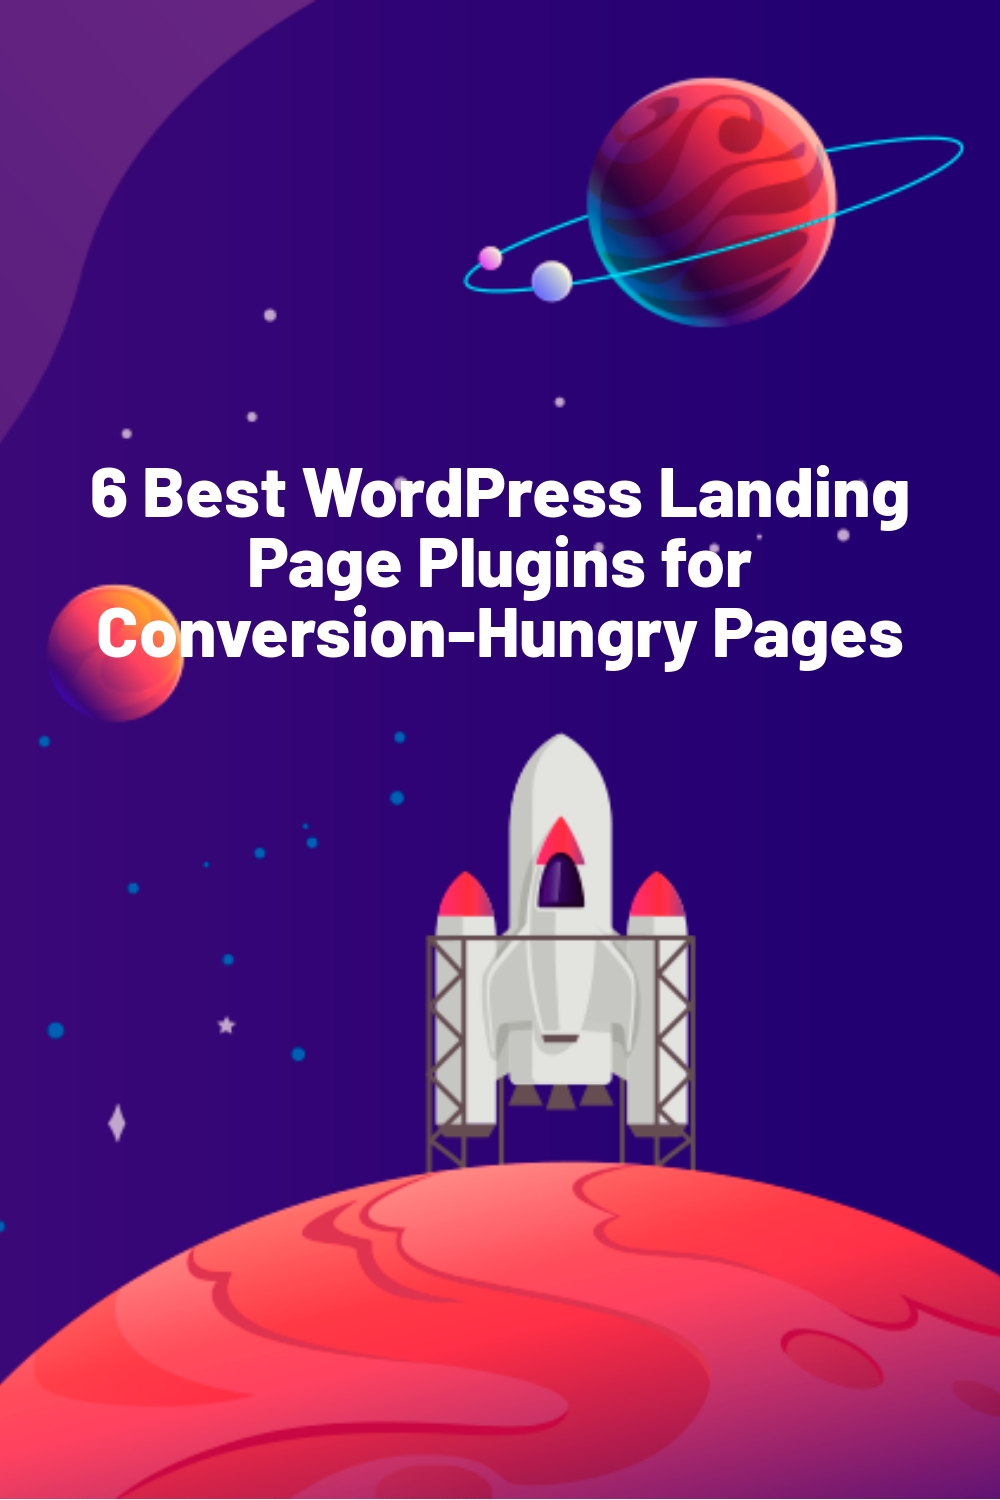 6 Best WordPress Landing Page Plugins for Conversion-Hungry Pages